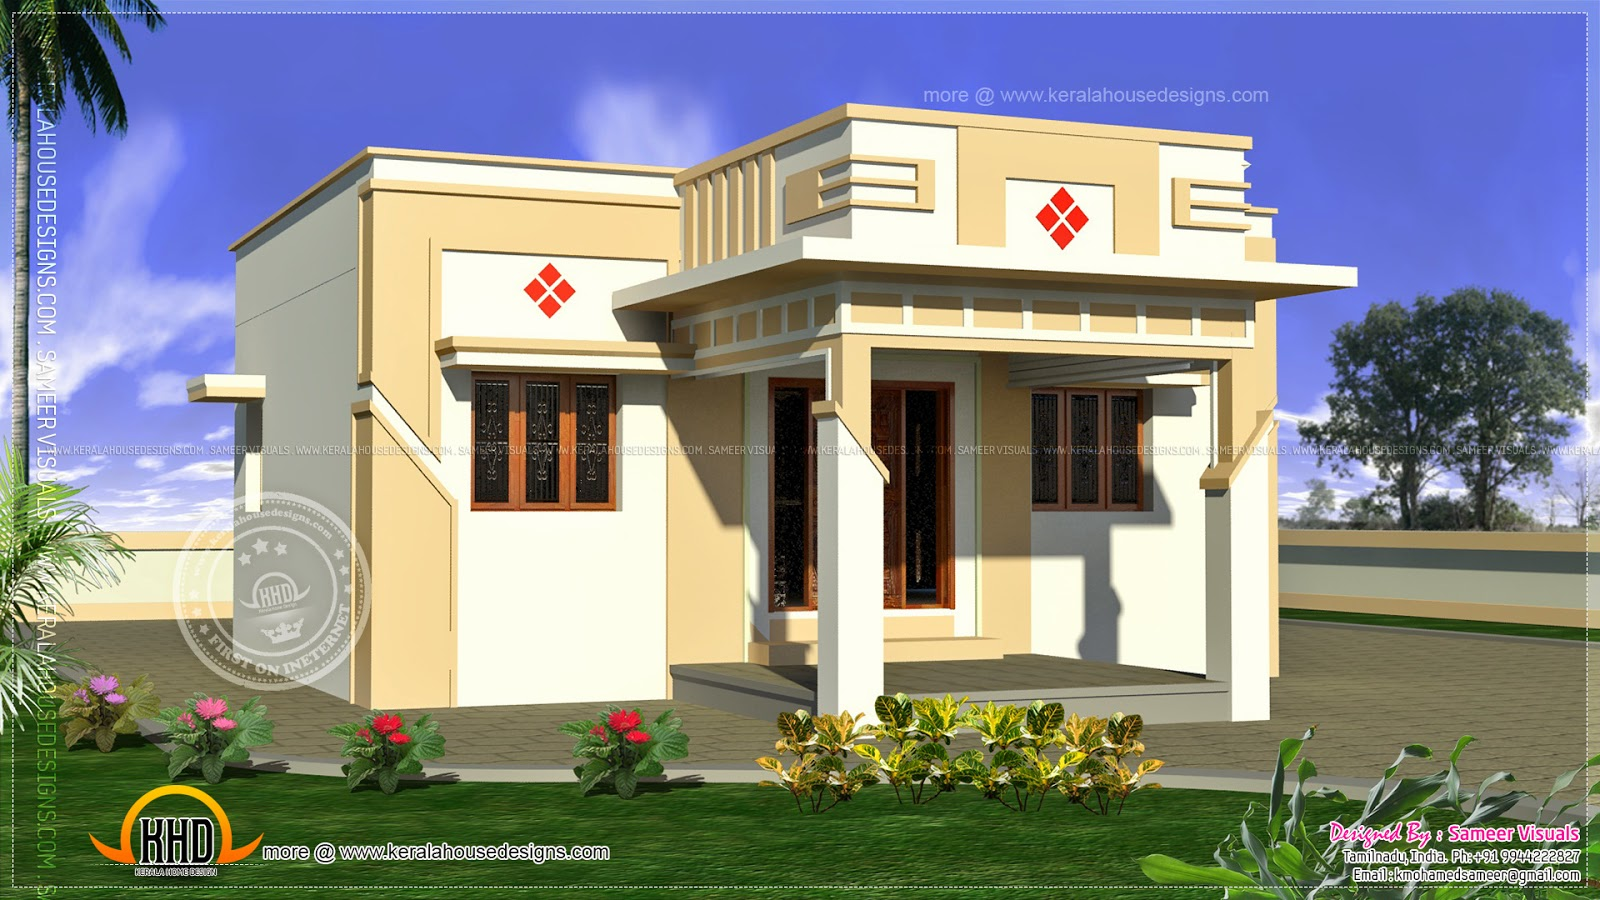 Simple And Low Budget House Plans Home Design Inside